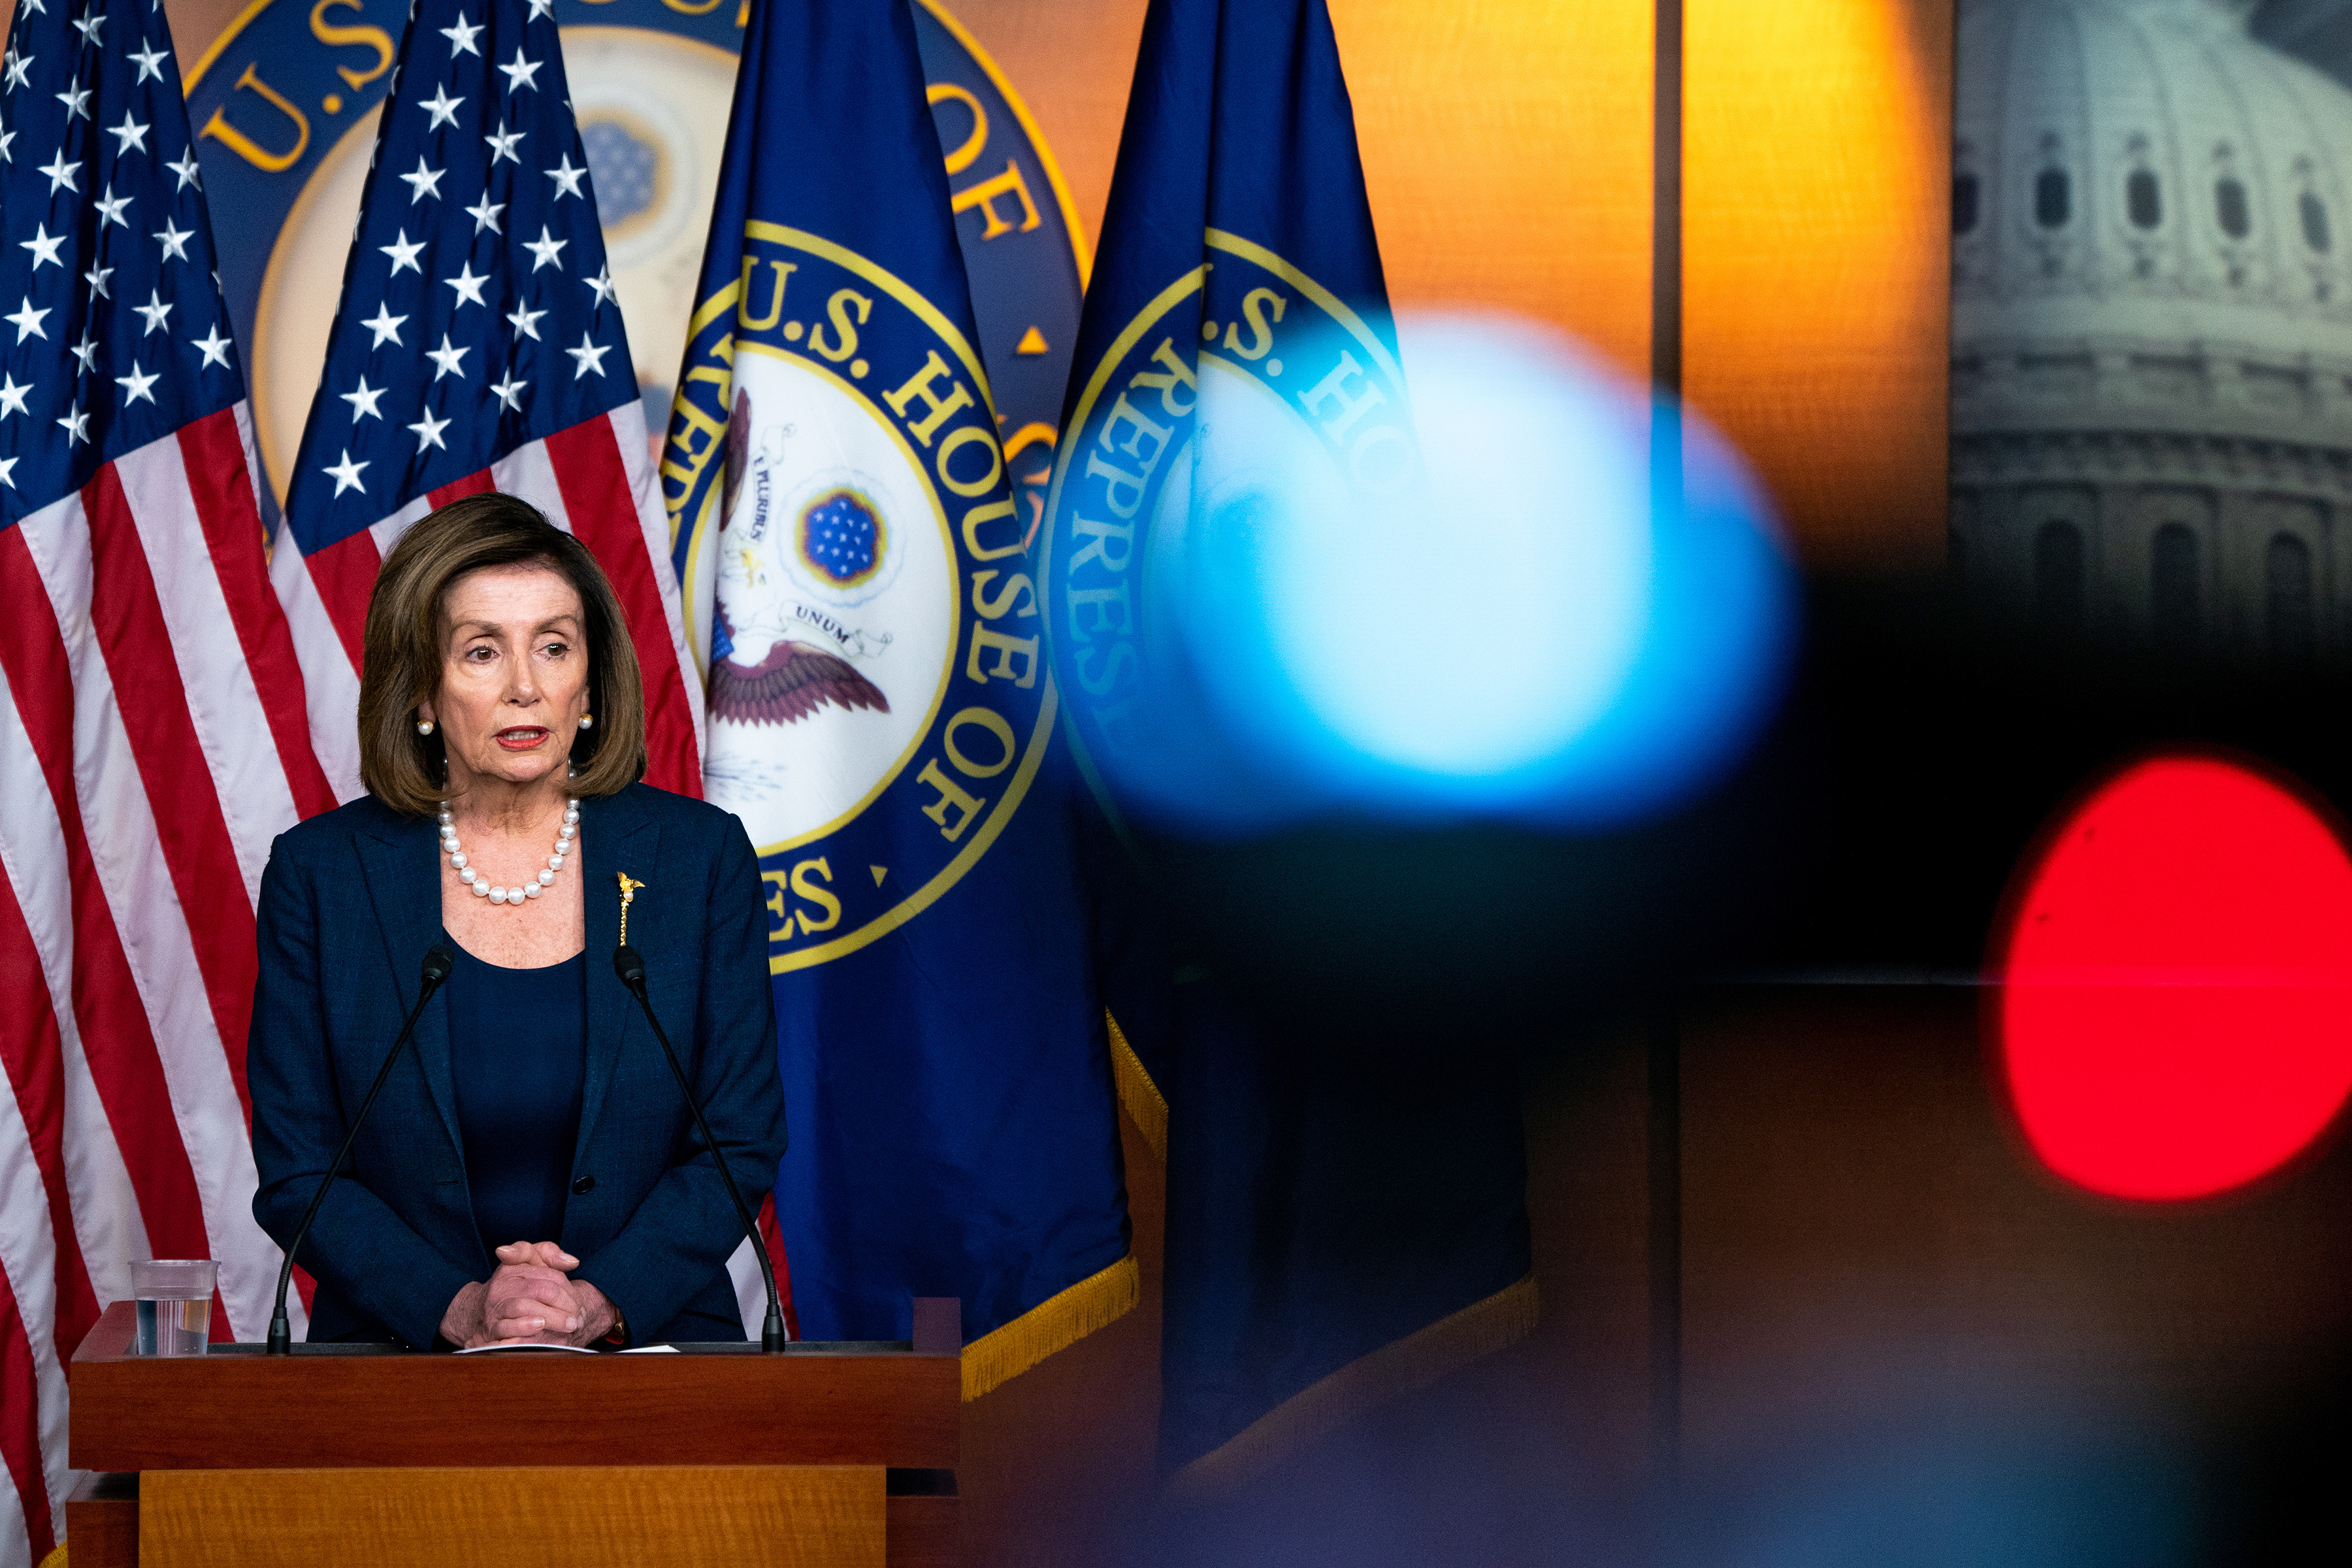 How Trump Is Spreading a Conspiracy Theory About Pelosi, Biden and Sanders